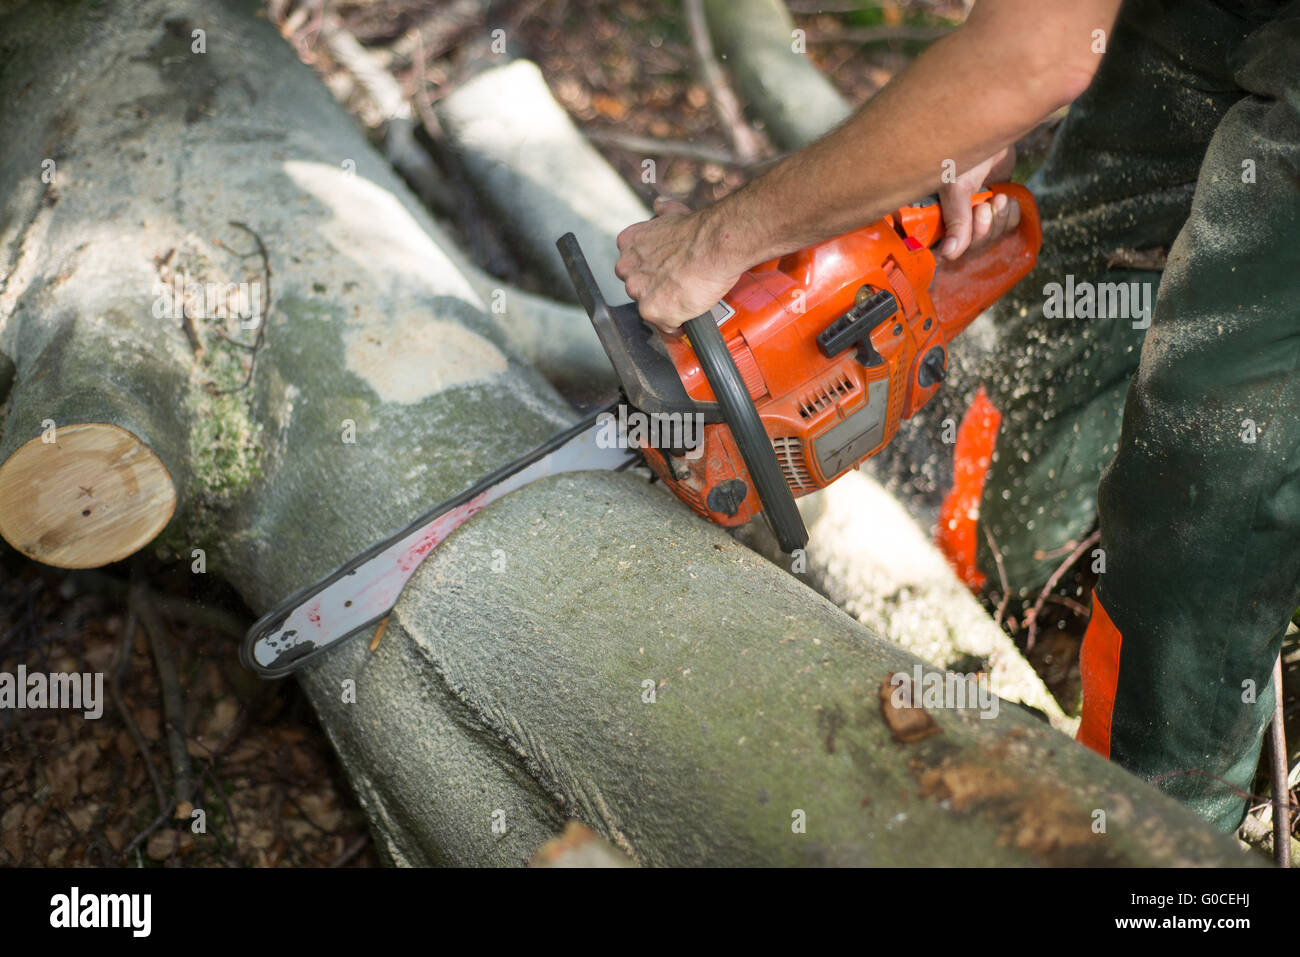 lumberjack with hardhat sawing wood in forest - Stock Image